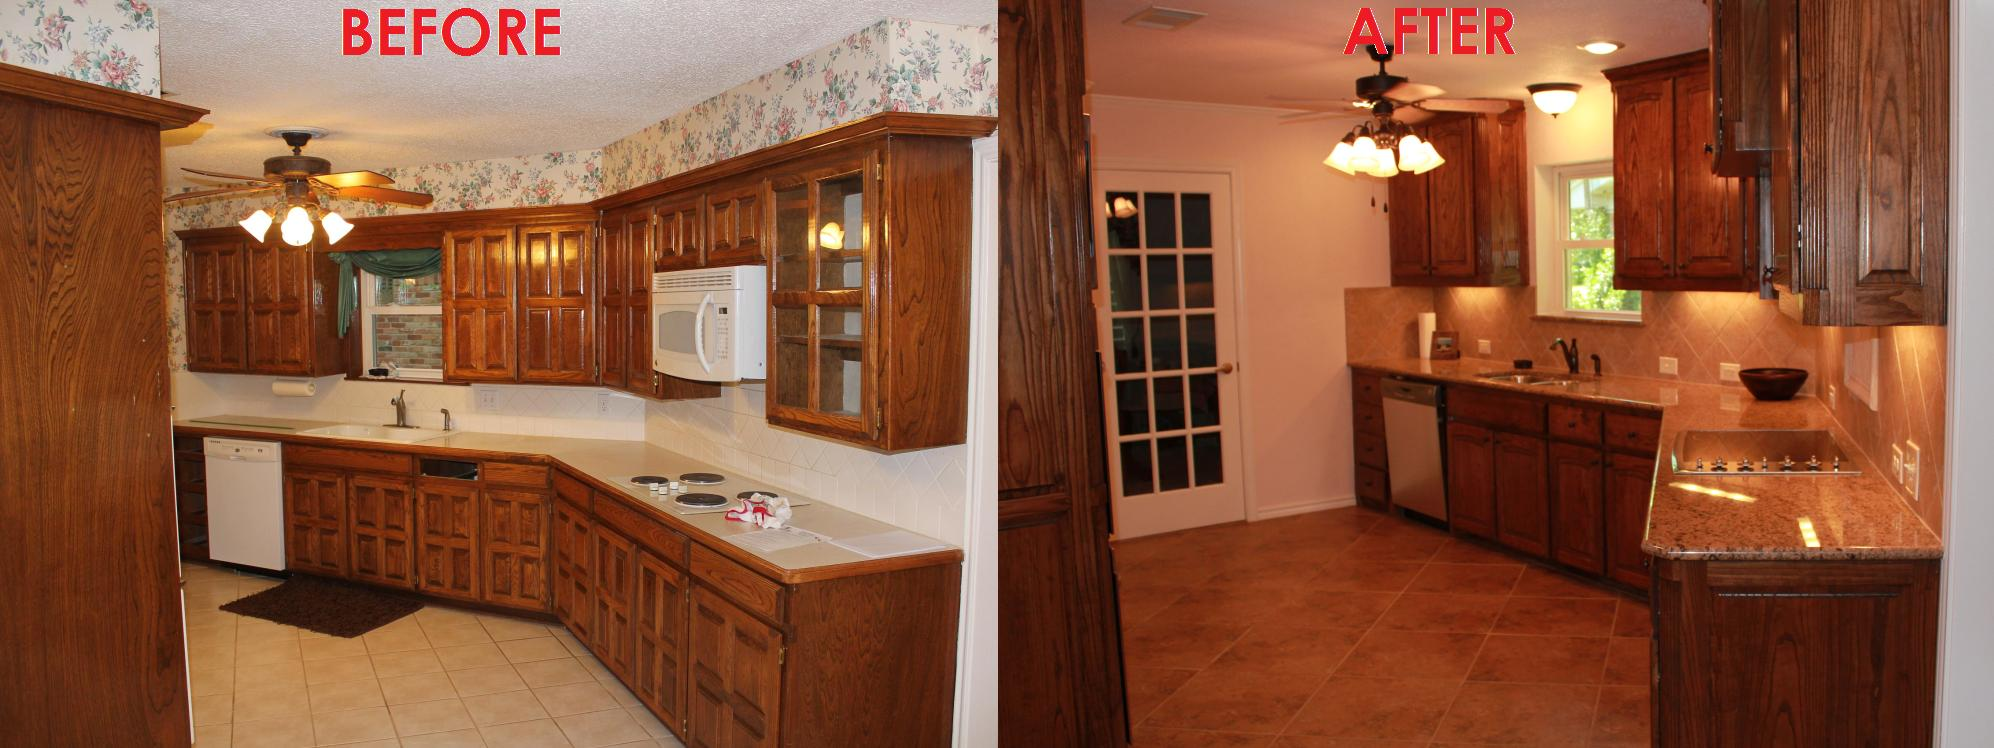 luxury small kitchen remodel before and after with new cabinet outlook and sink plus backsplash together with additional lighting and new floor tile